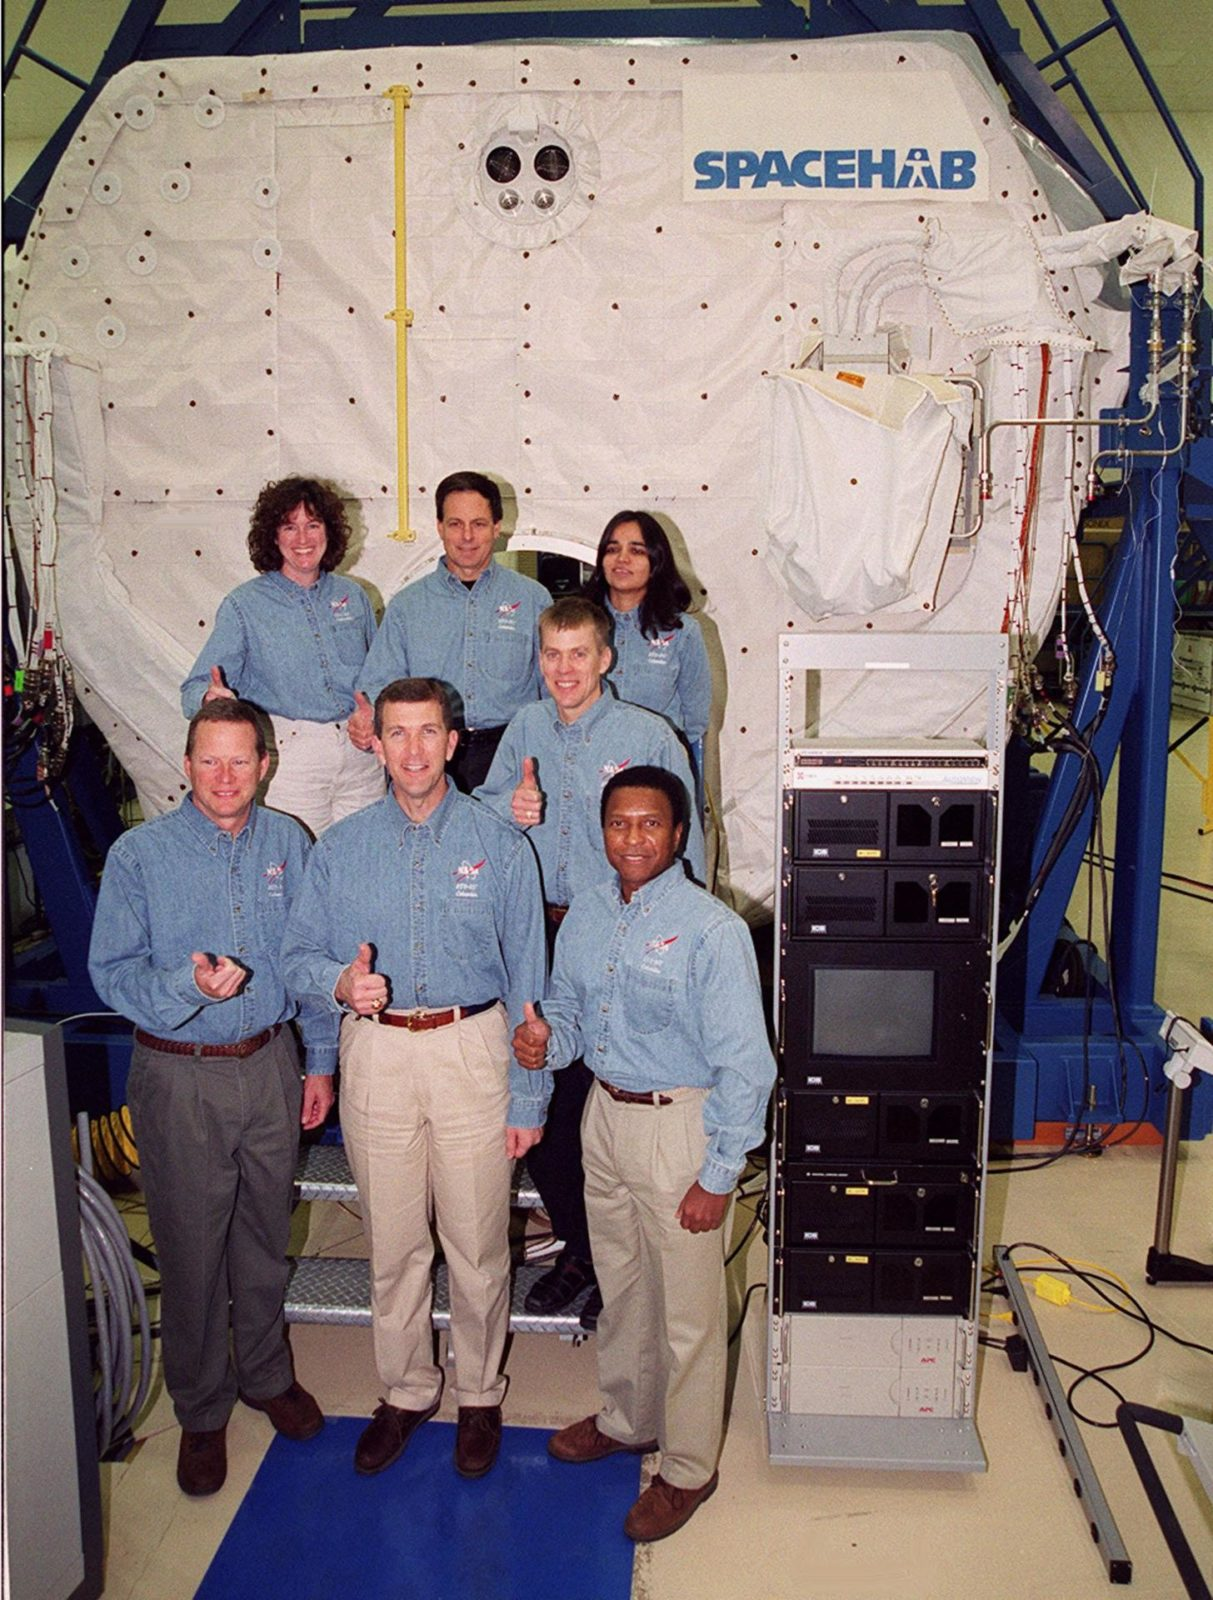 """KENNEDY SPACE CENTER, Fla. -- Taking part in In-Flight Maintenance training, the STS-107 crew poses in front of the SPACEHAB Double Module. In back are Mission Specialist Laurel Clark, Payload Specialist Ilan Ramon of Israel and Mission Specialist Kalpana Chawla; in front are Mission Specialist David M. Brown, Commander Rick D. Husband, Pilot William C. """"Willie"""" McCool (behind) and Mission Specialist Michael Anderson. As a research mission, STS-107 will carry the SPACEHAB Double Module in its first research flight into space and a broad collection of experiments ranging from material science to life science. It is scheduled to launch July 19, 2001 KSC00pp1853"""